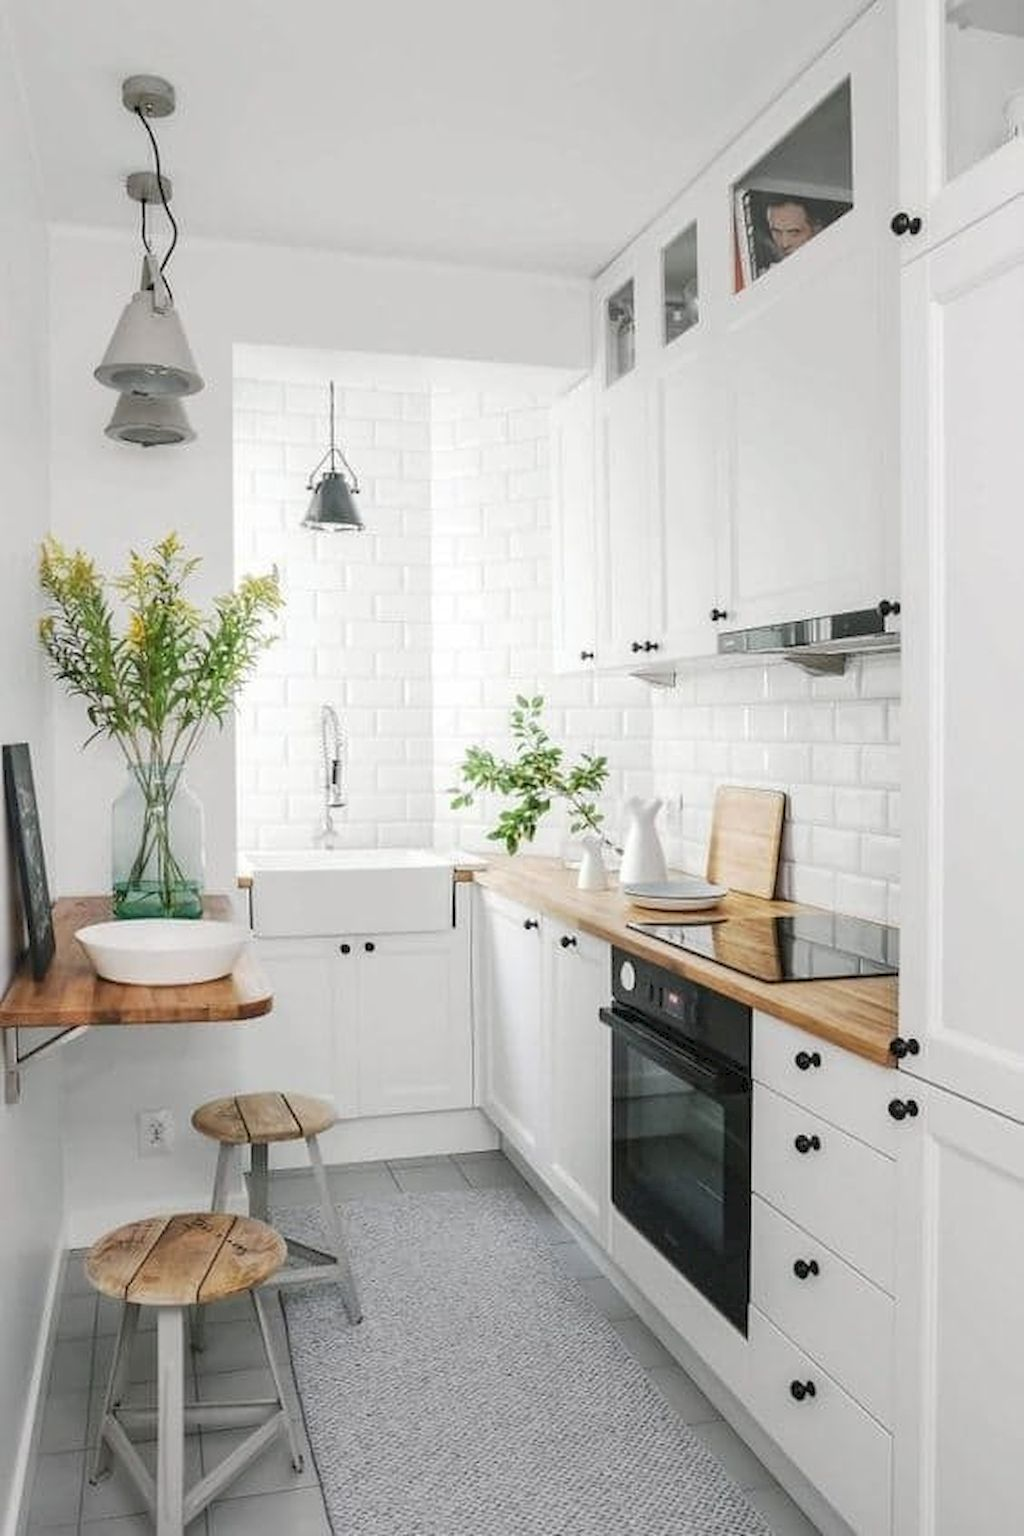 simply apartment kitchen decorating ideas on a budget apartment